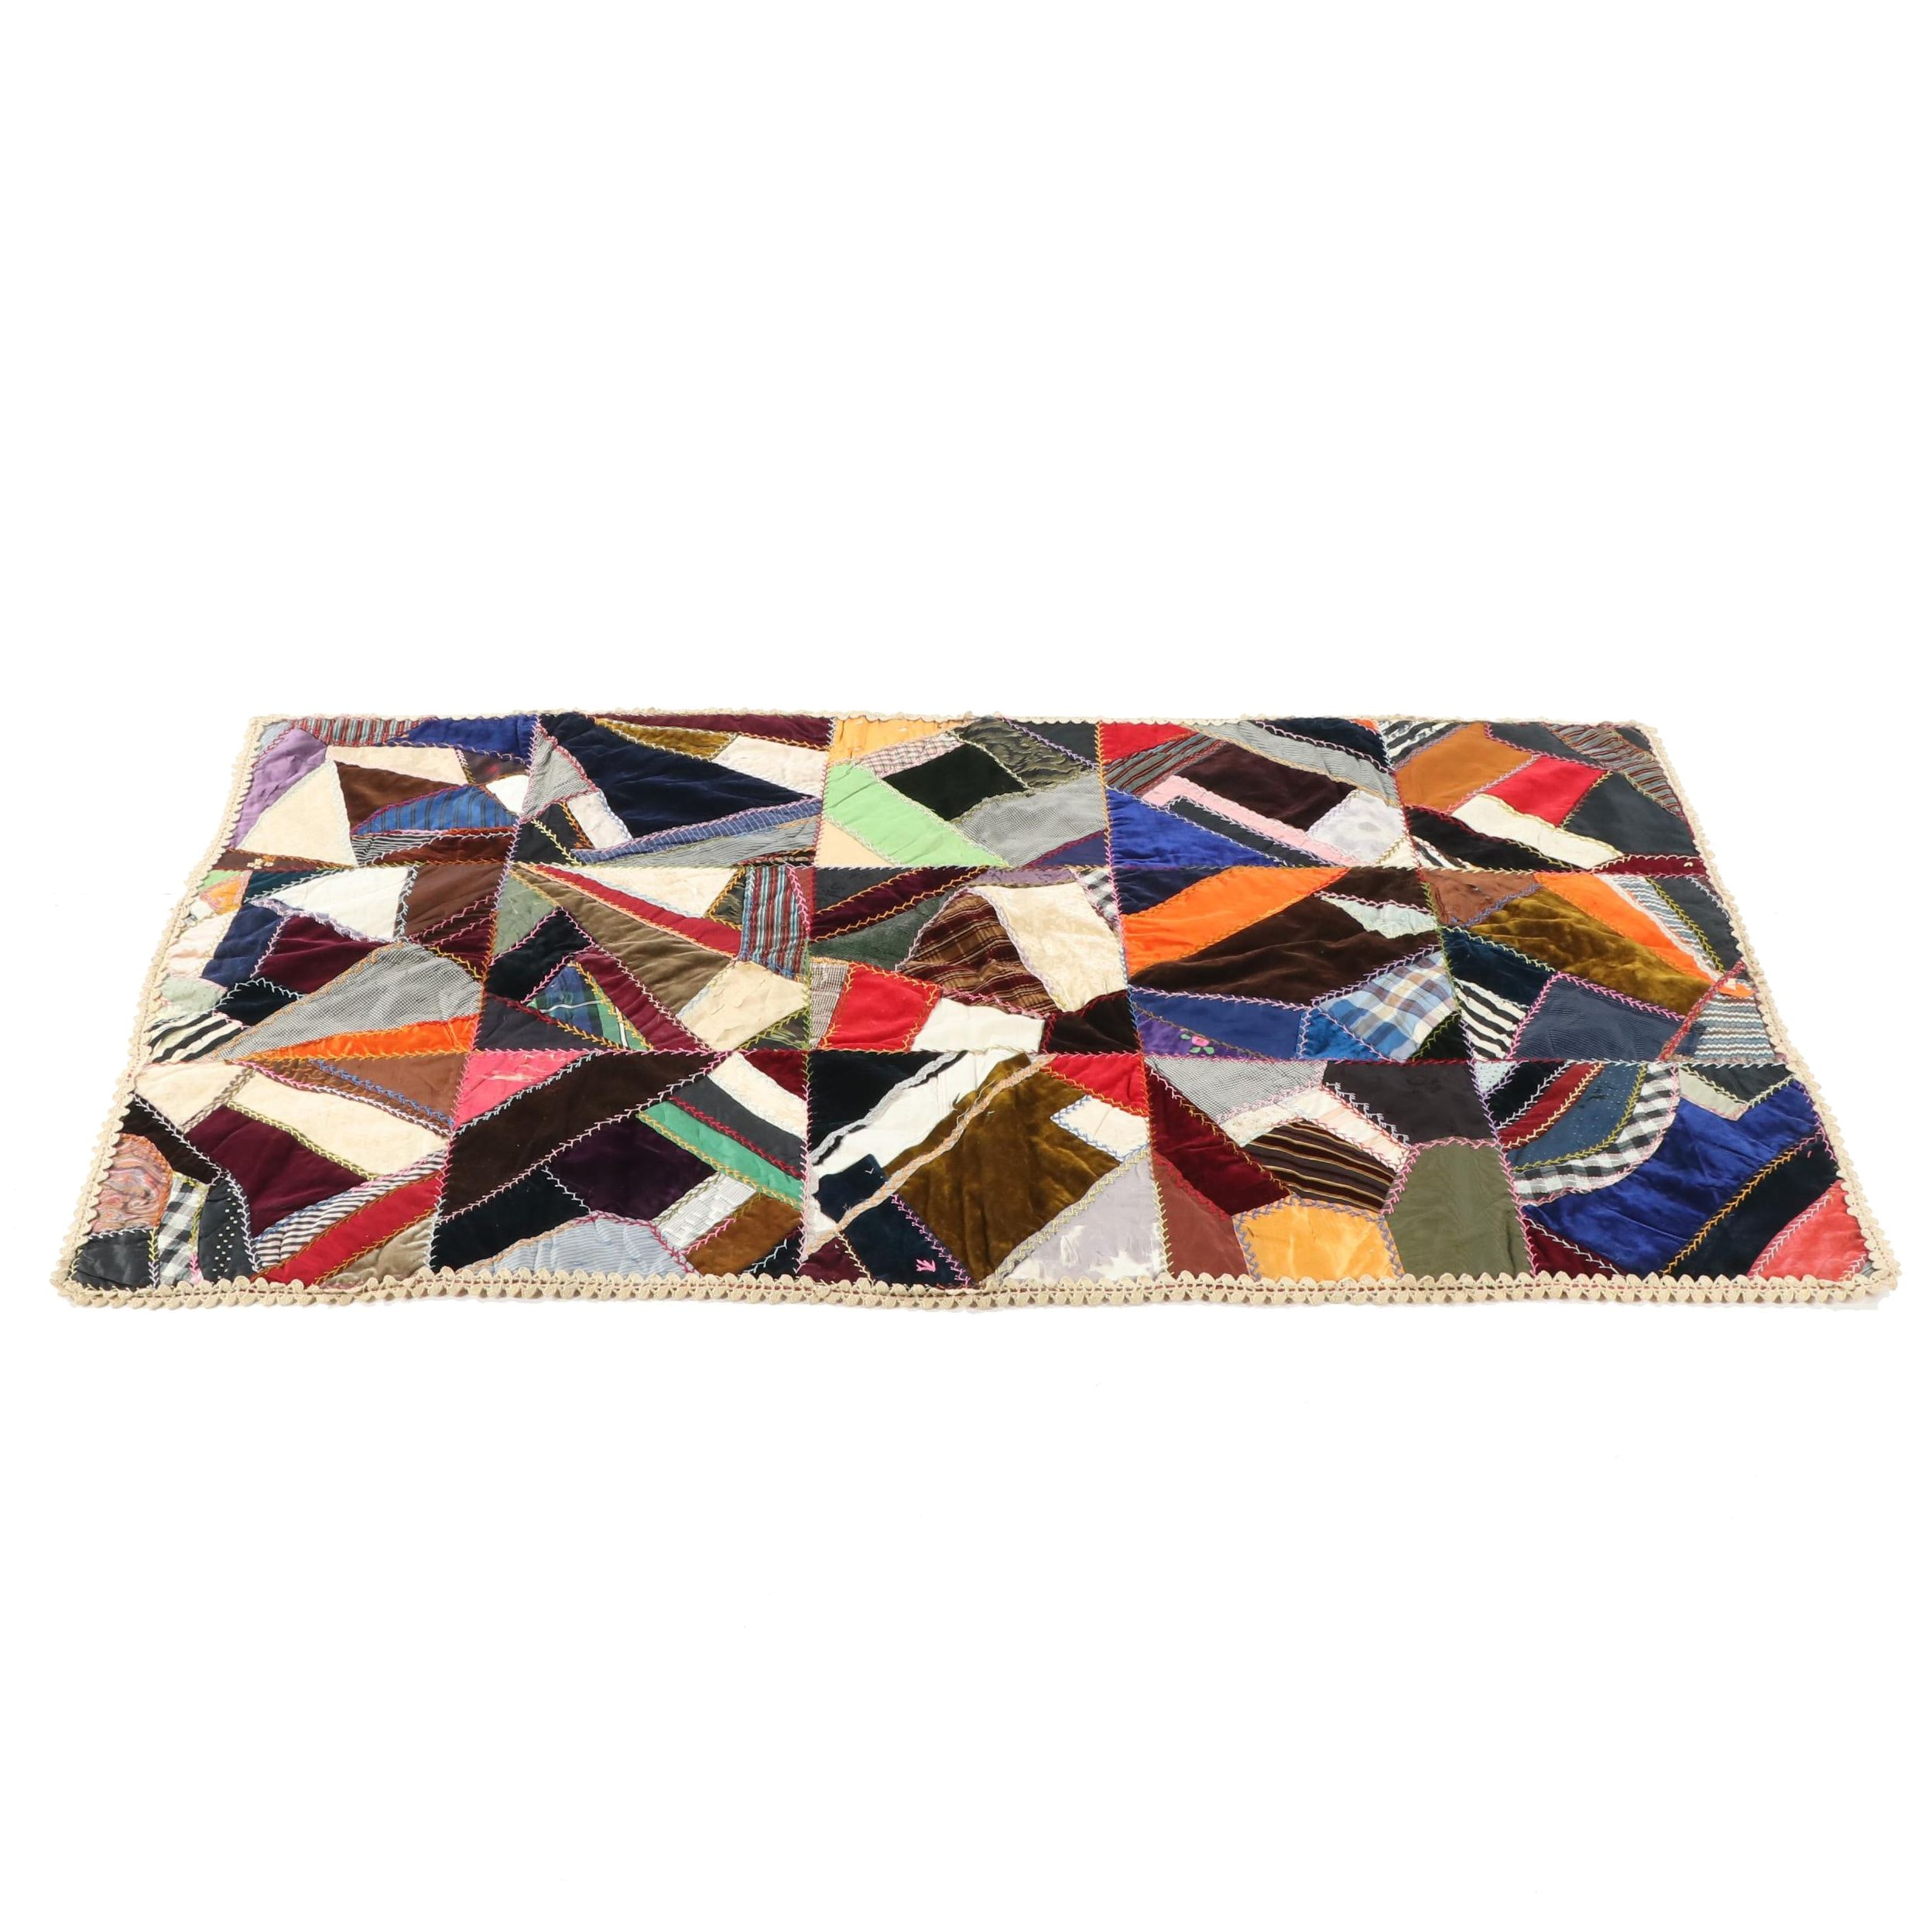 """Handmade """"Crazy"""" Quilt Lap Blanket with Crocheted Fringe, Early 20th Century"""